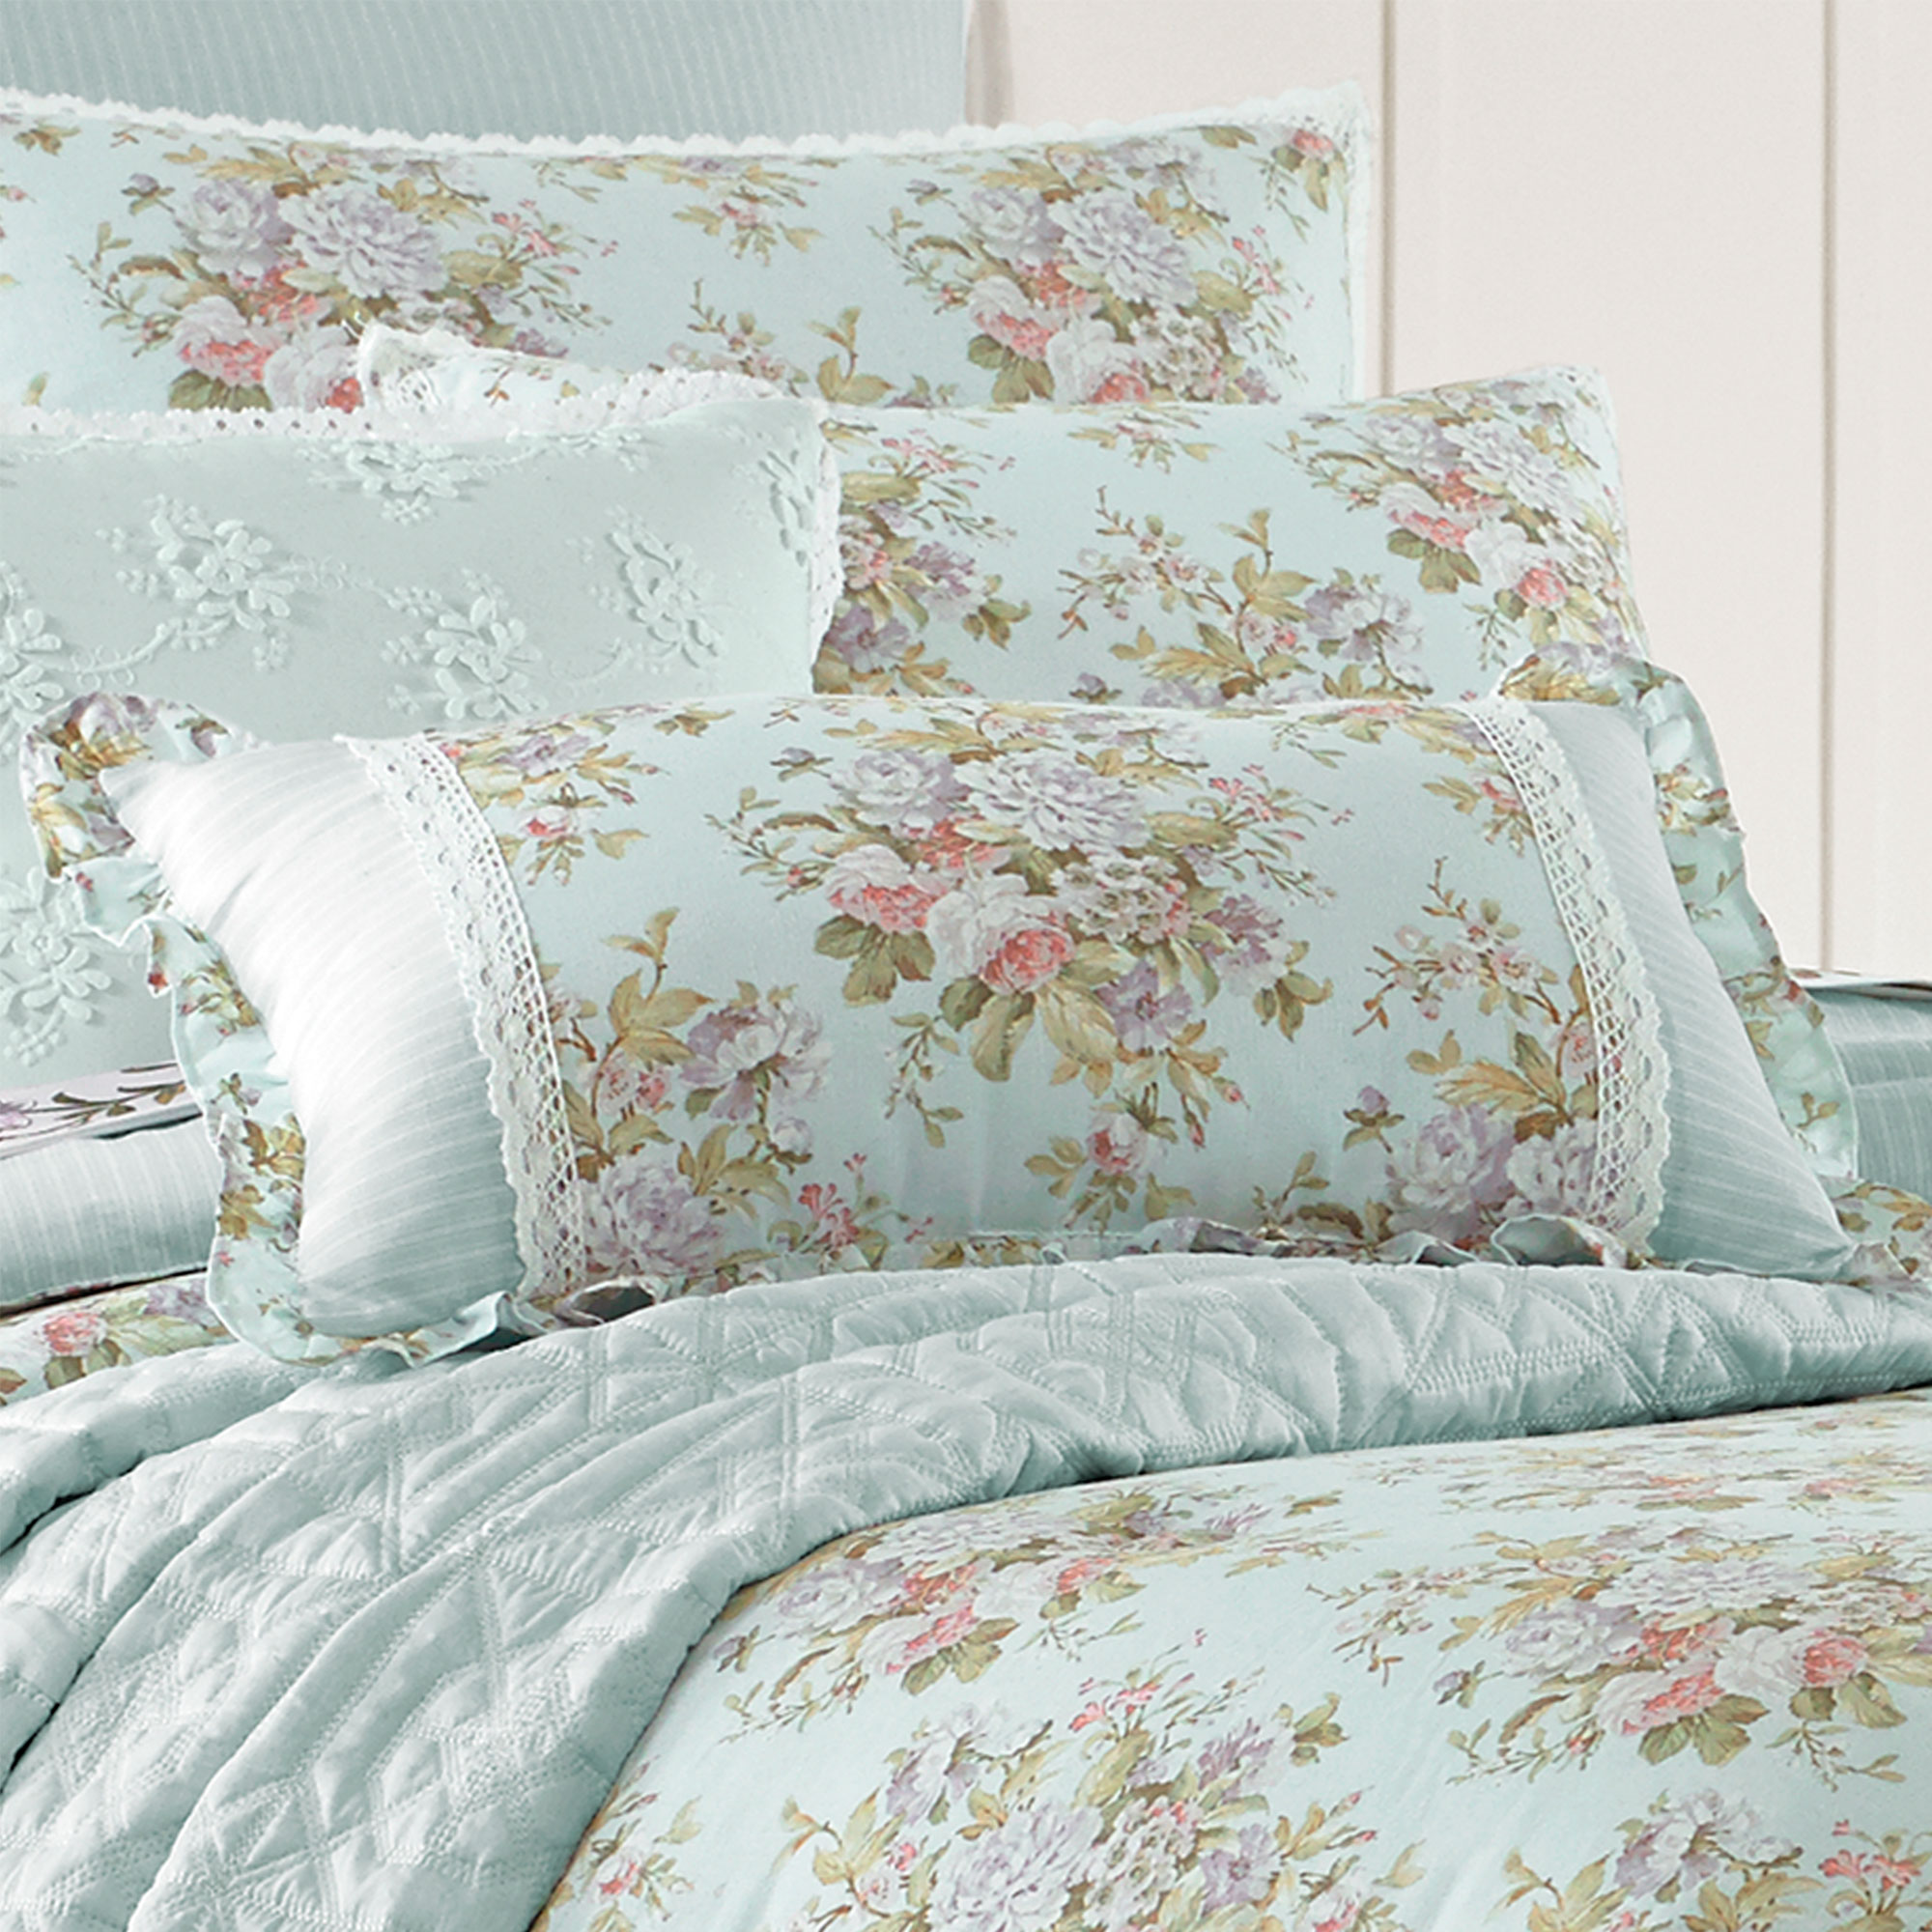 Haley Queen 4 Piece Comforter Set